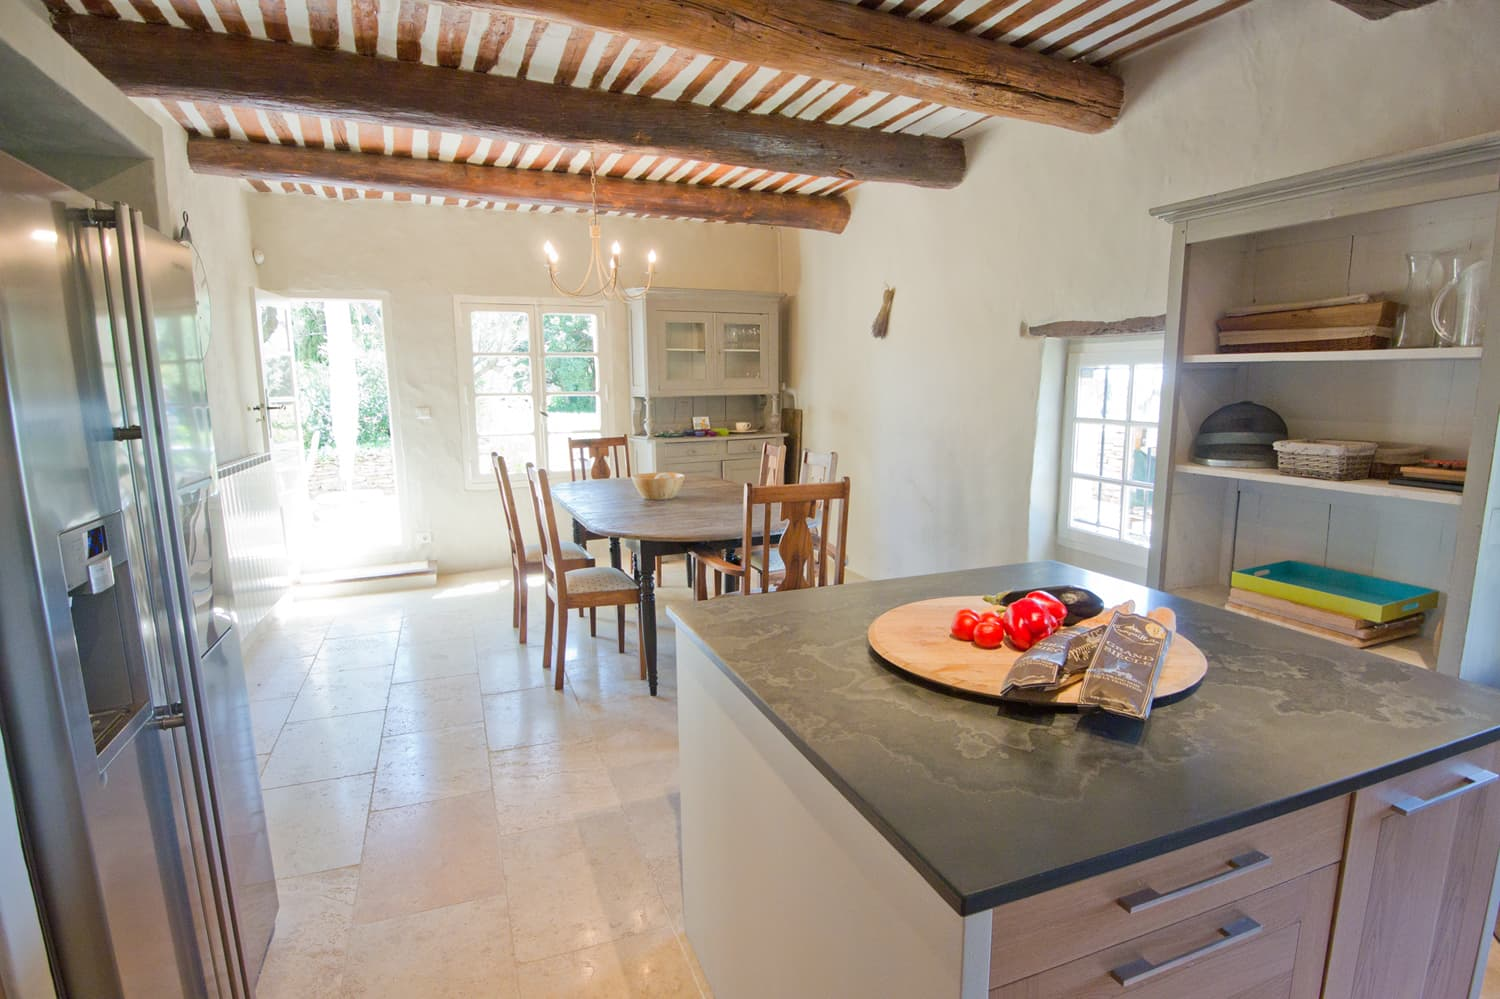 Kitchen in Provence self-catering home